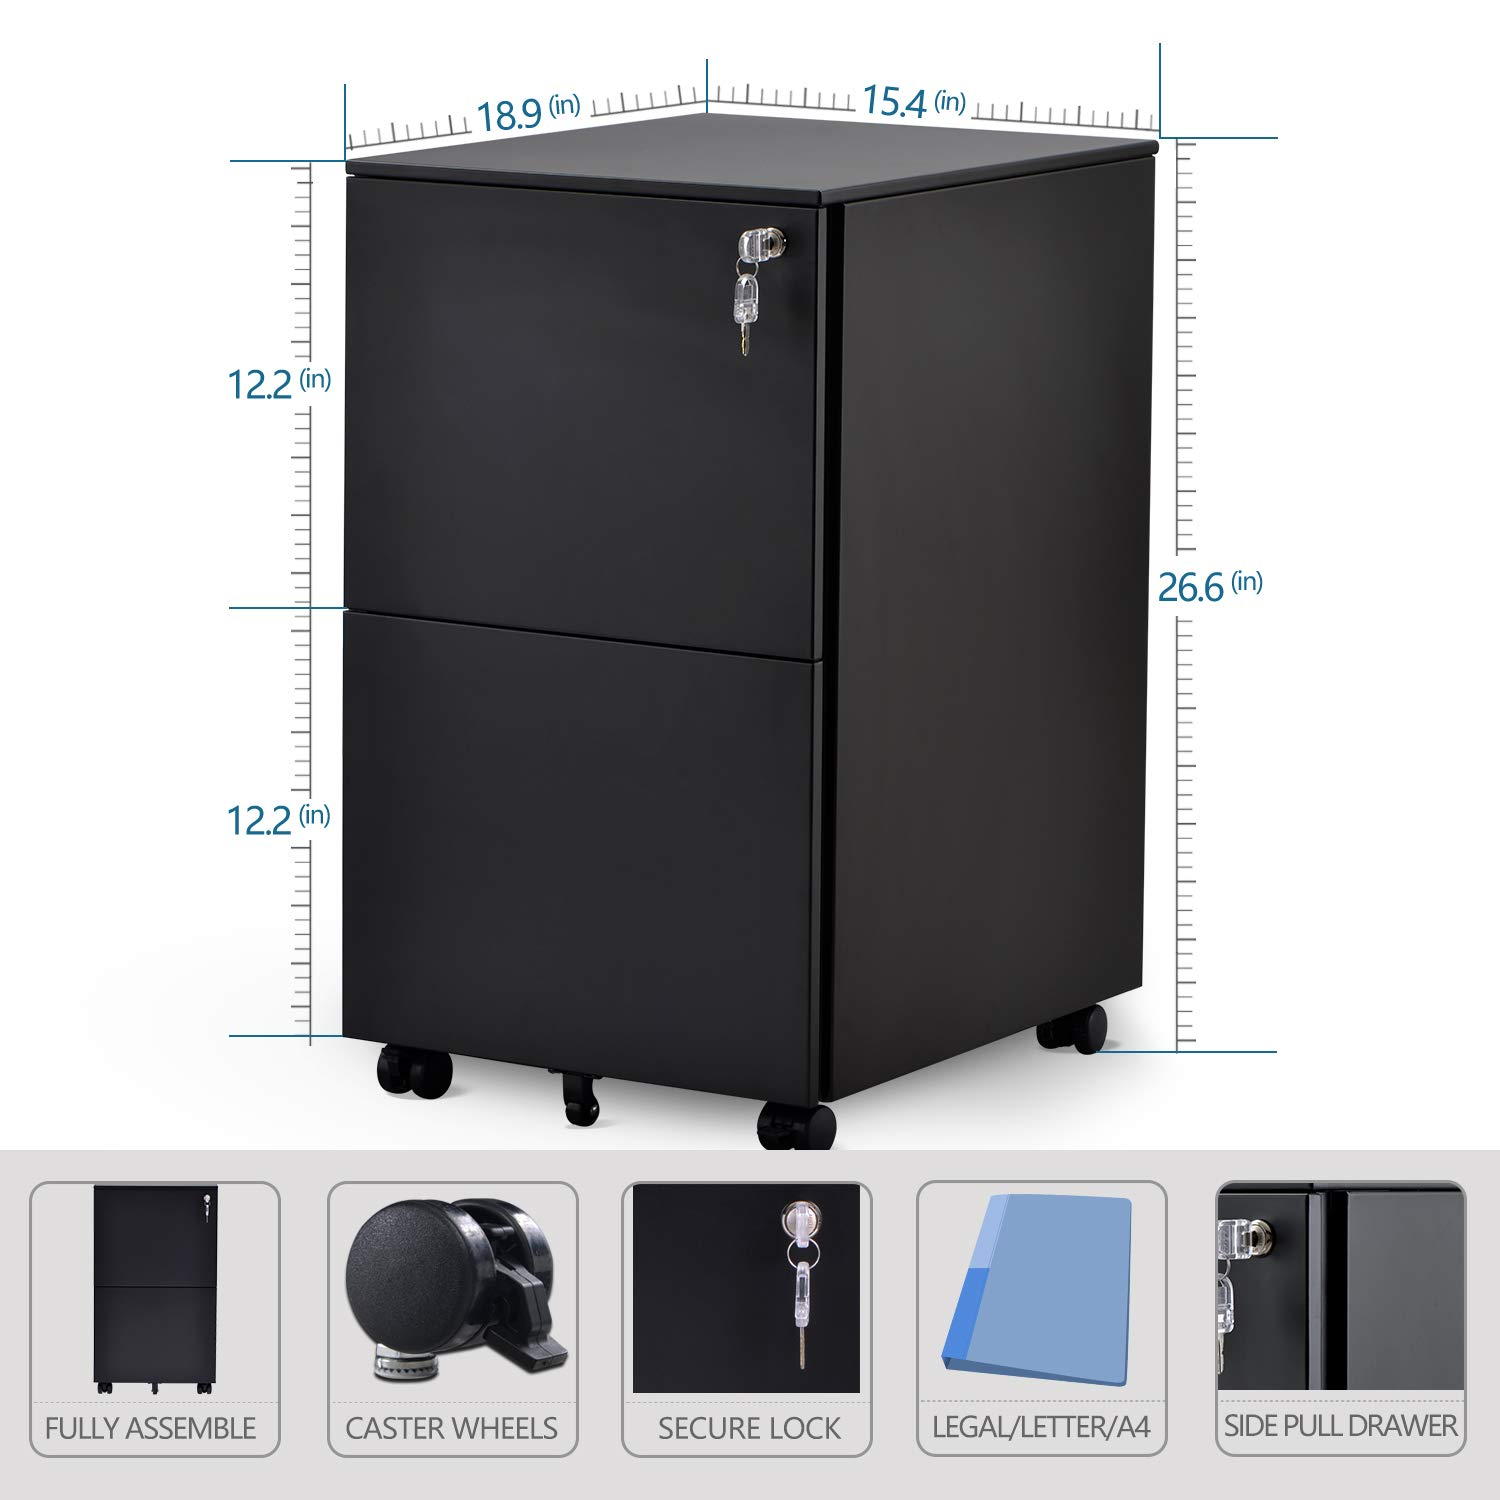 Vertical Metal Filing Cabinet for Home and Office 2 Drawer Mobile File Cabinet with Lock Fully Assembled Except Wheels Black Steel Legal//Letter//A4 Size